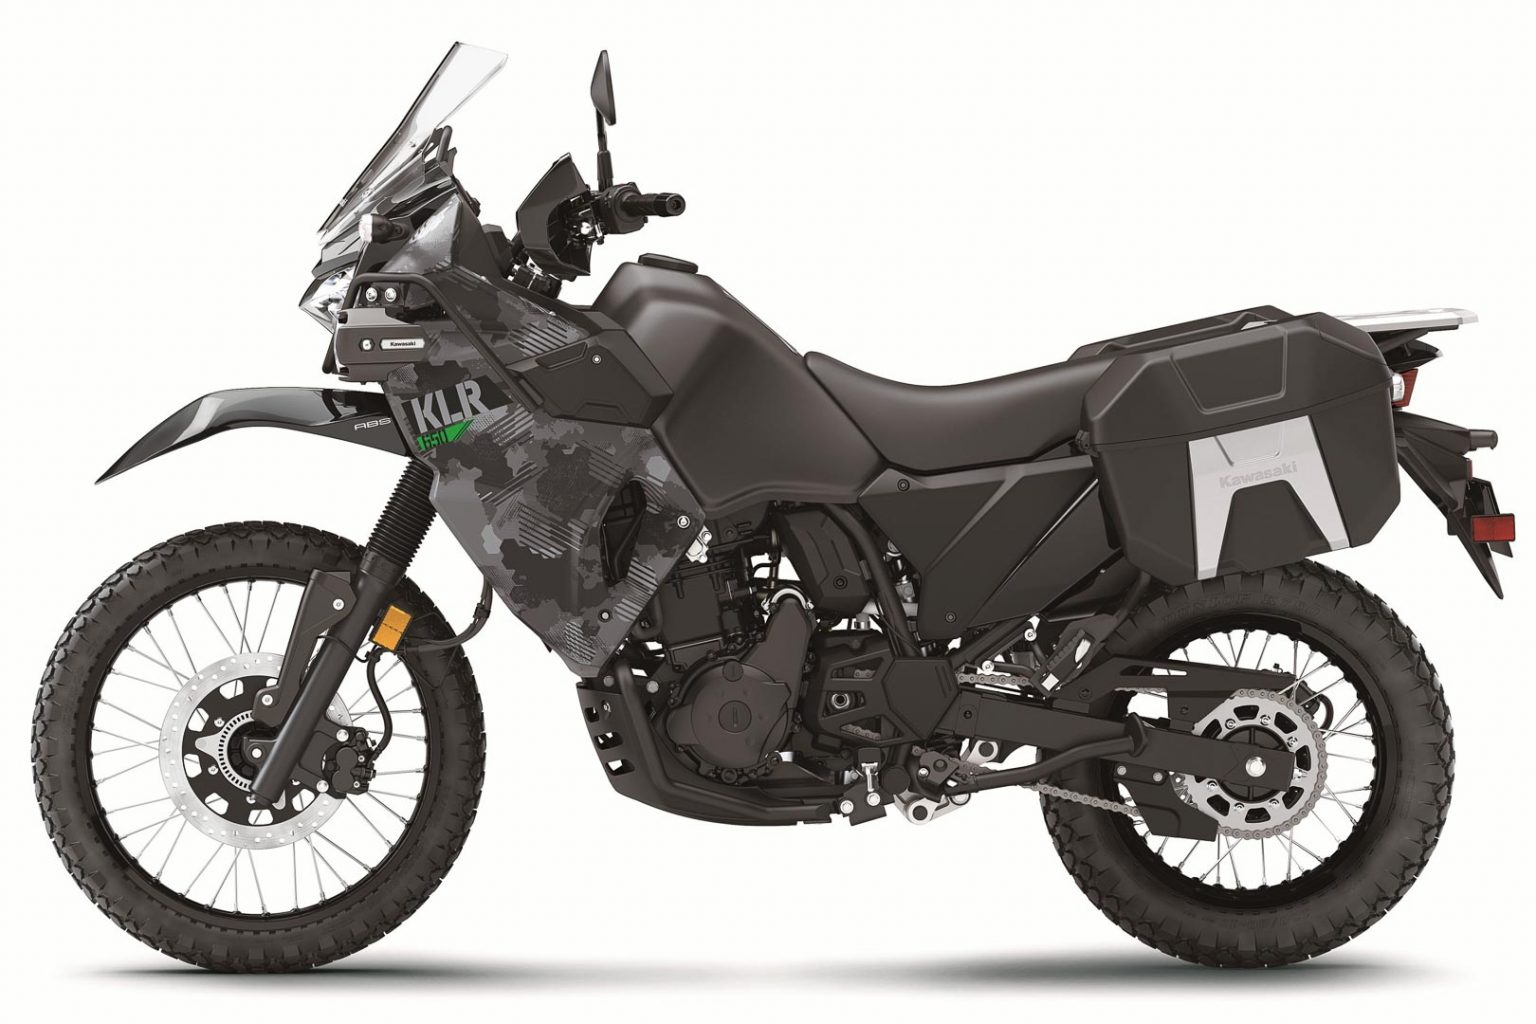 2022 Kawasaki KLR650 First Look (14 Fast Facts)